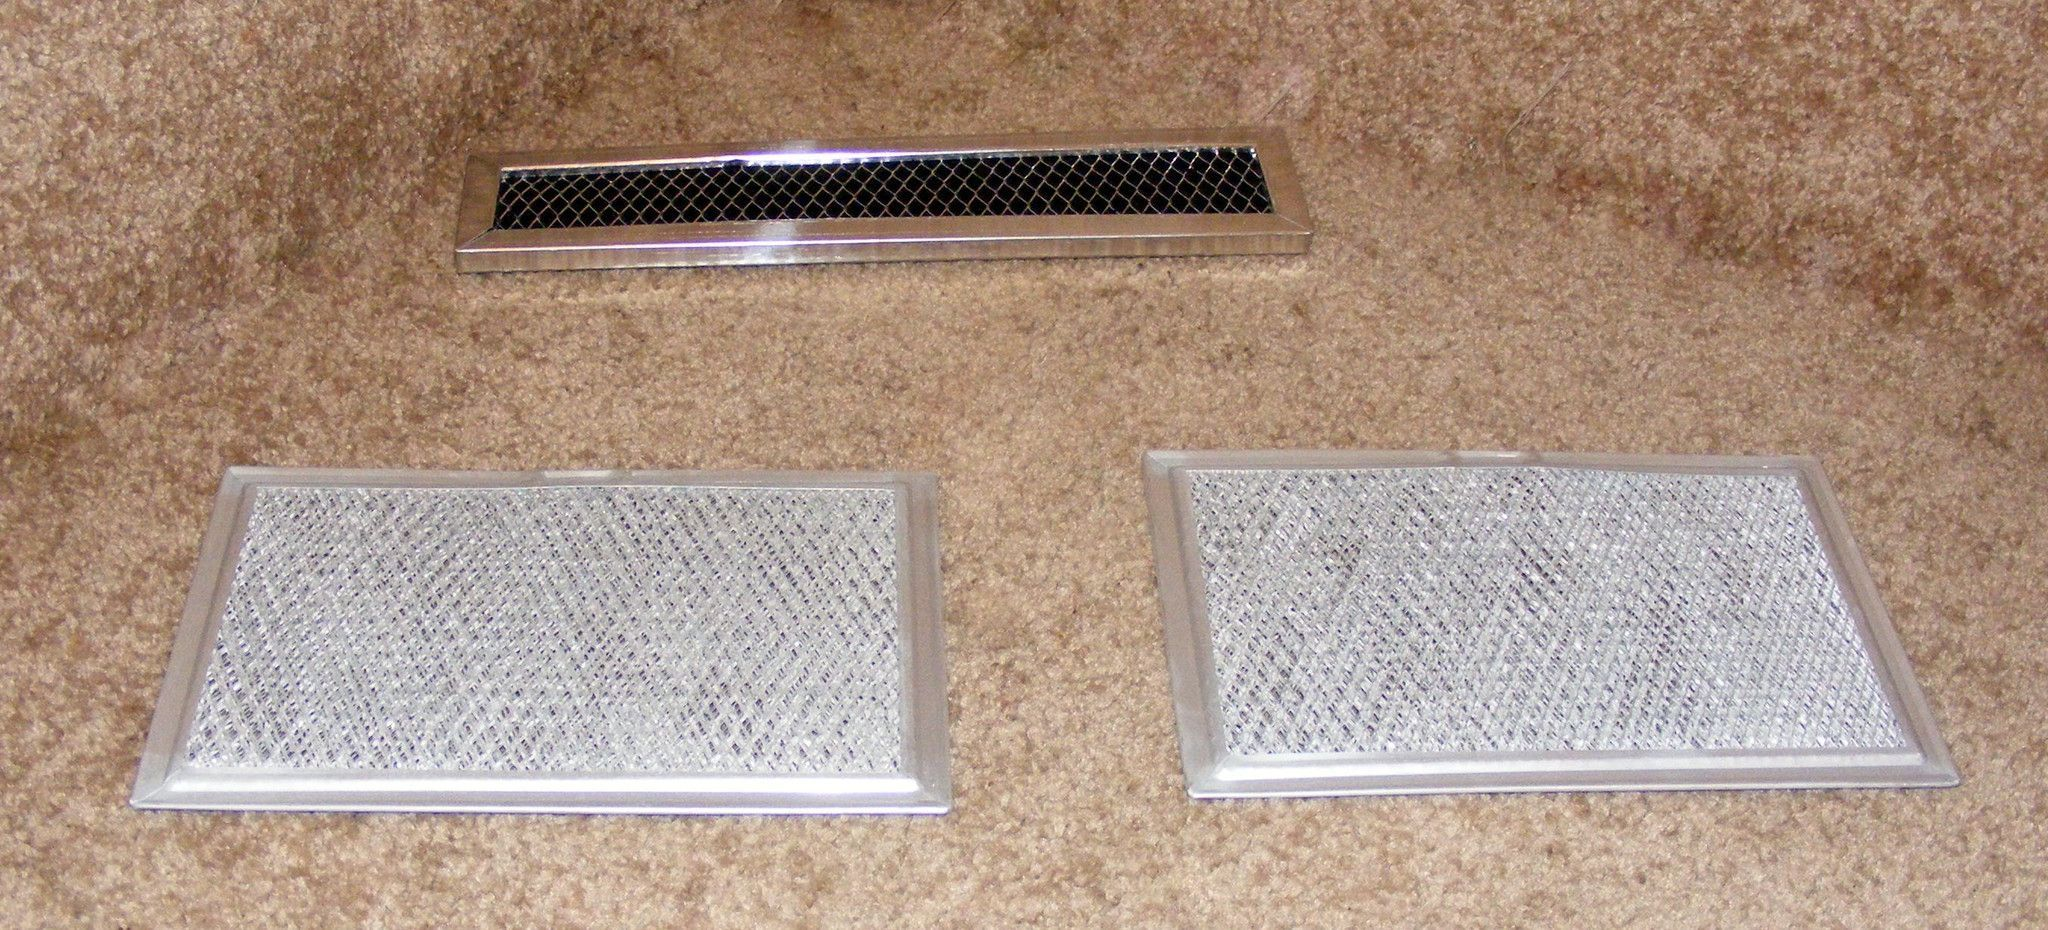 Frigidaire Microwave Filter Set